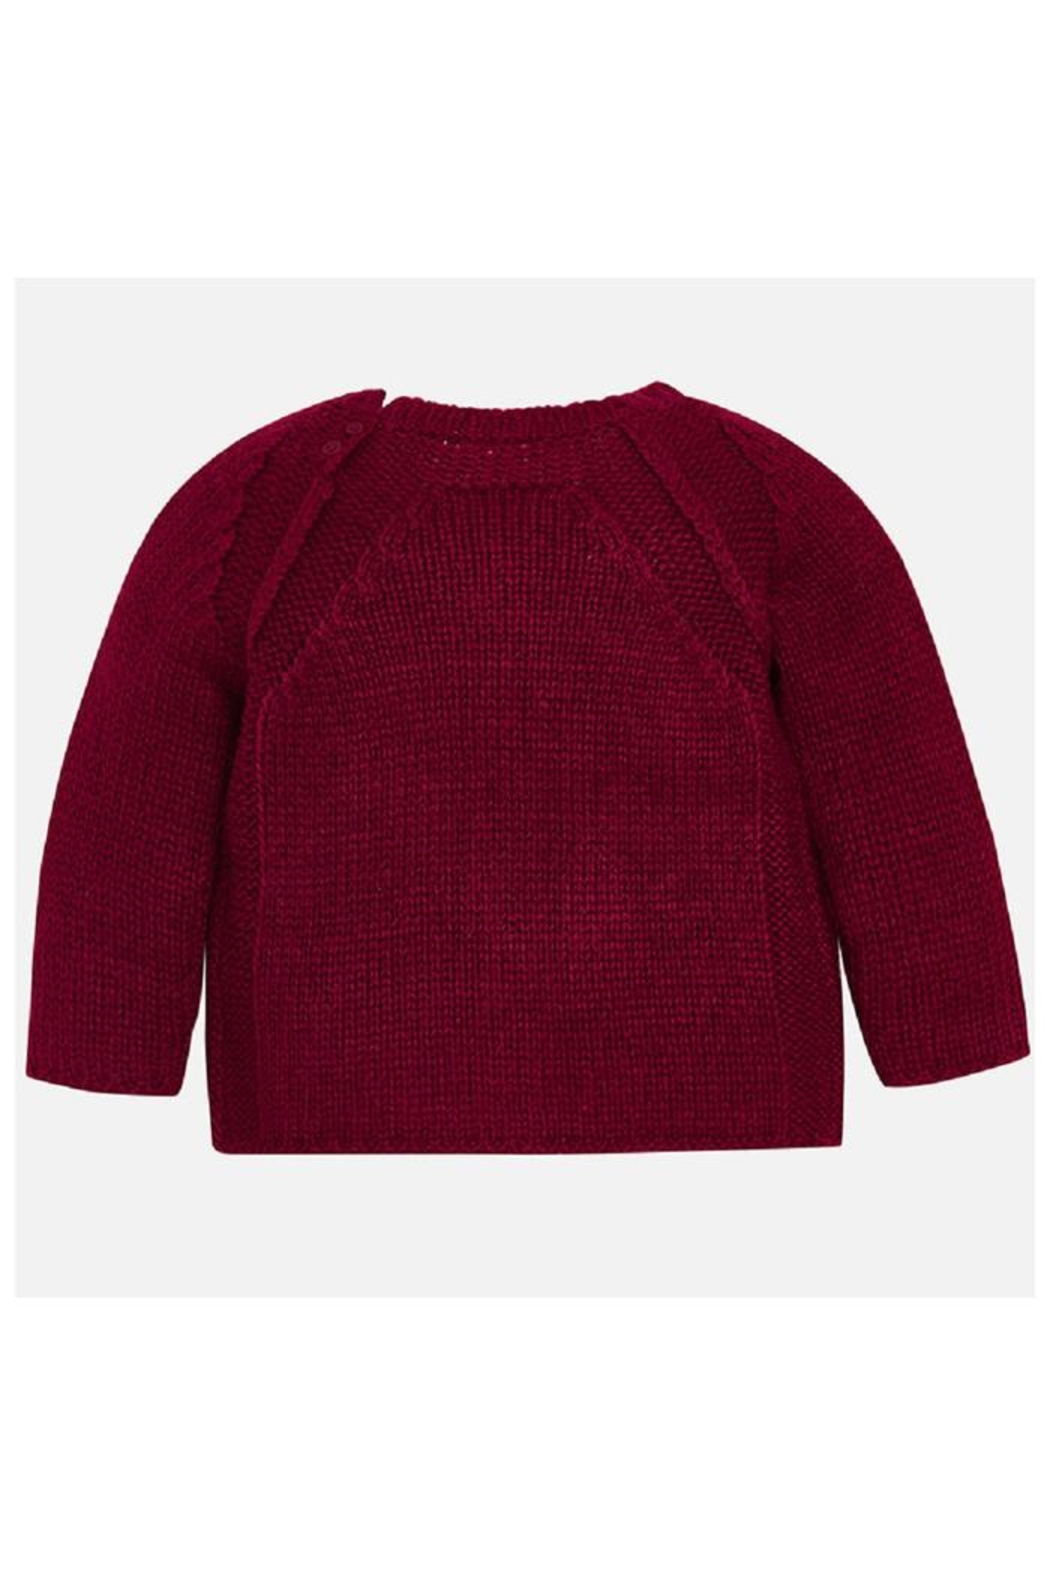 Mayoral Raspberry Knit Sweater - Front Full Image